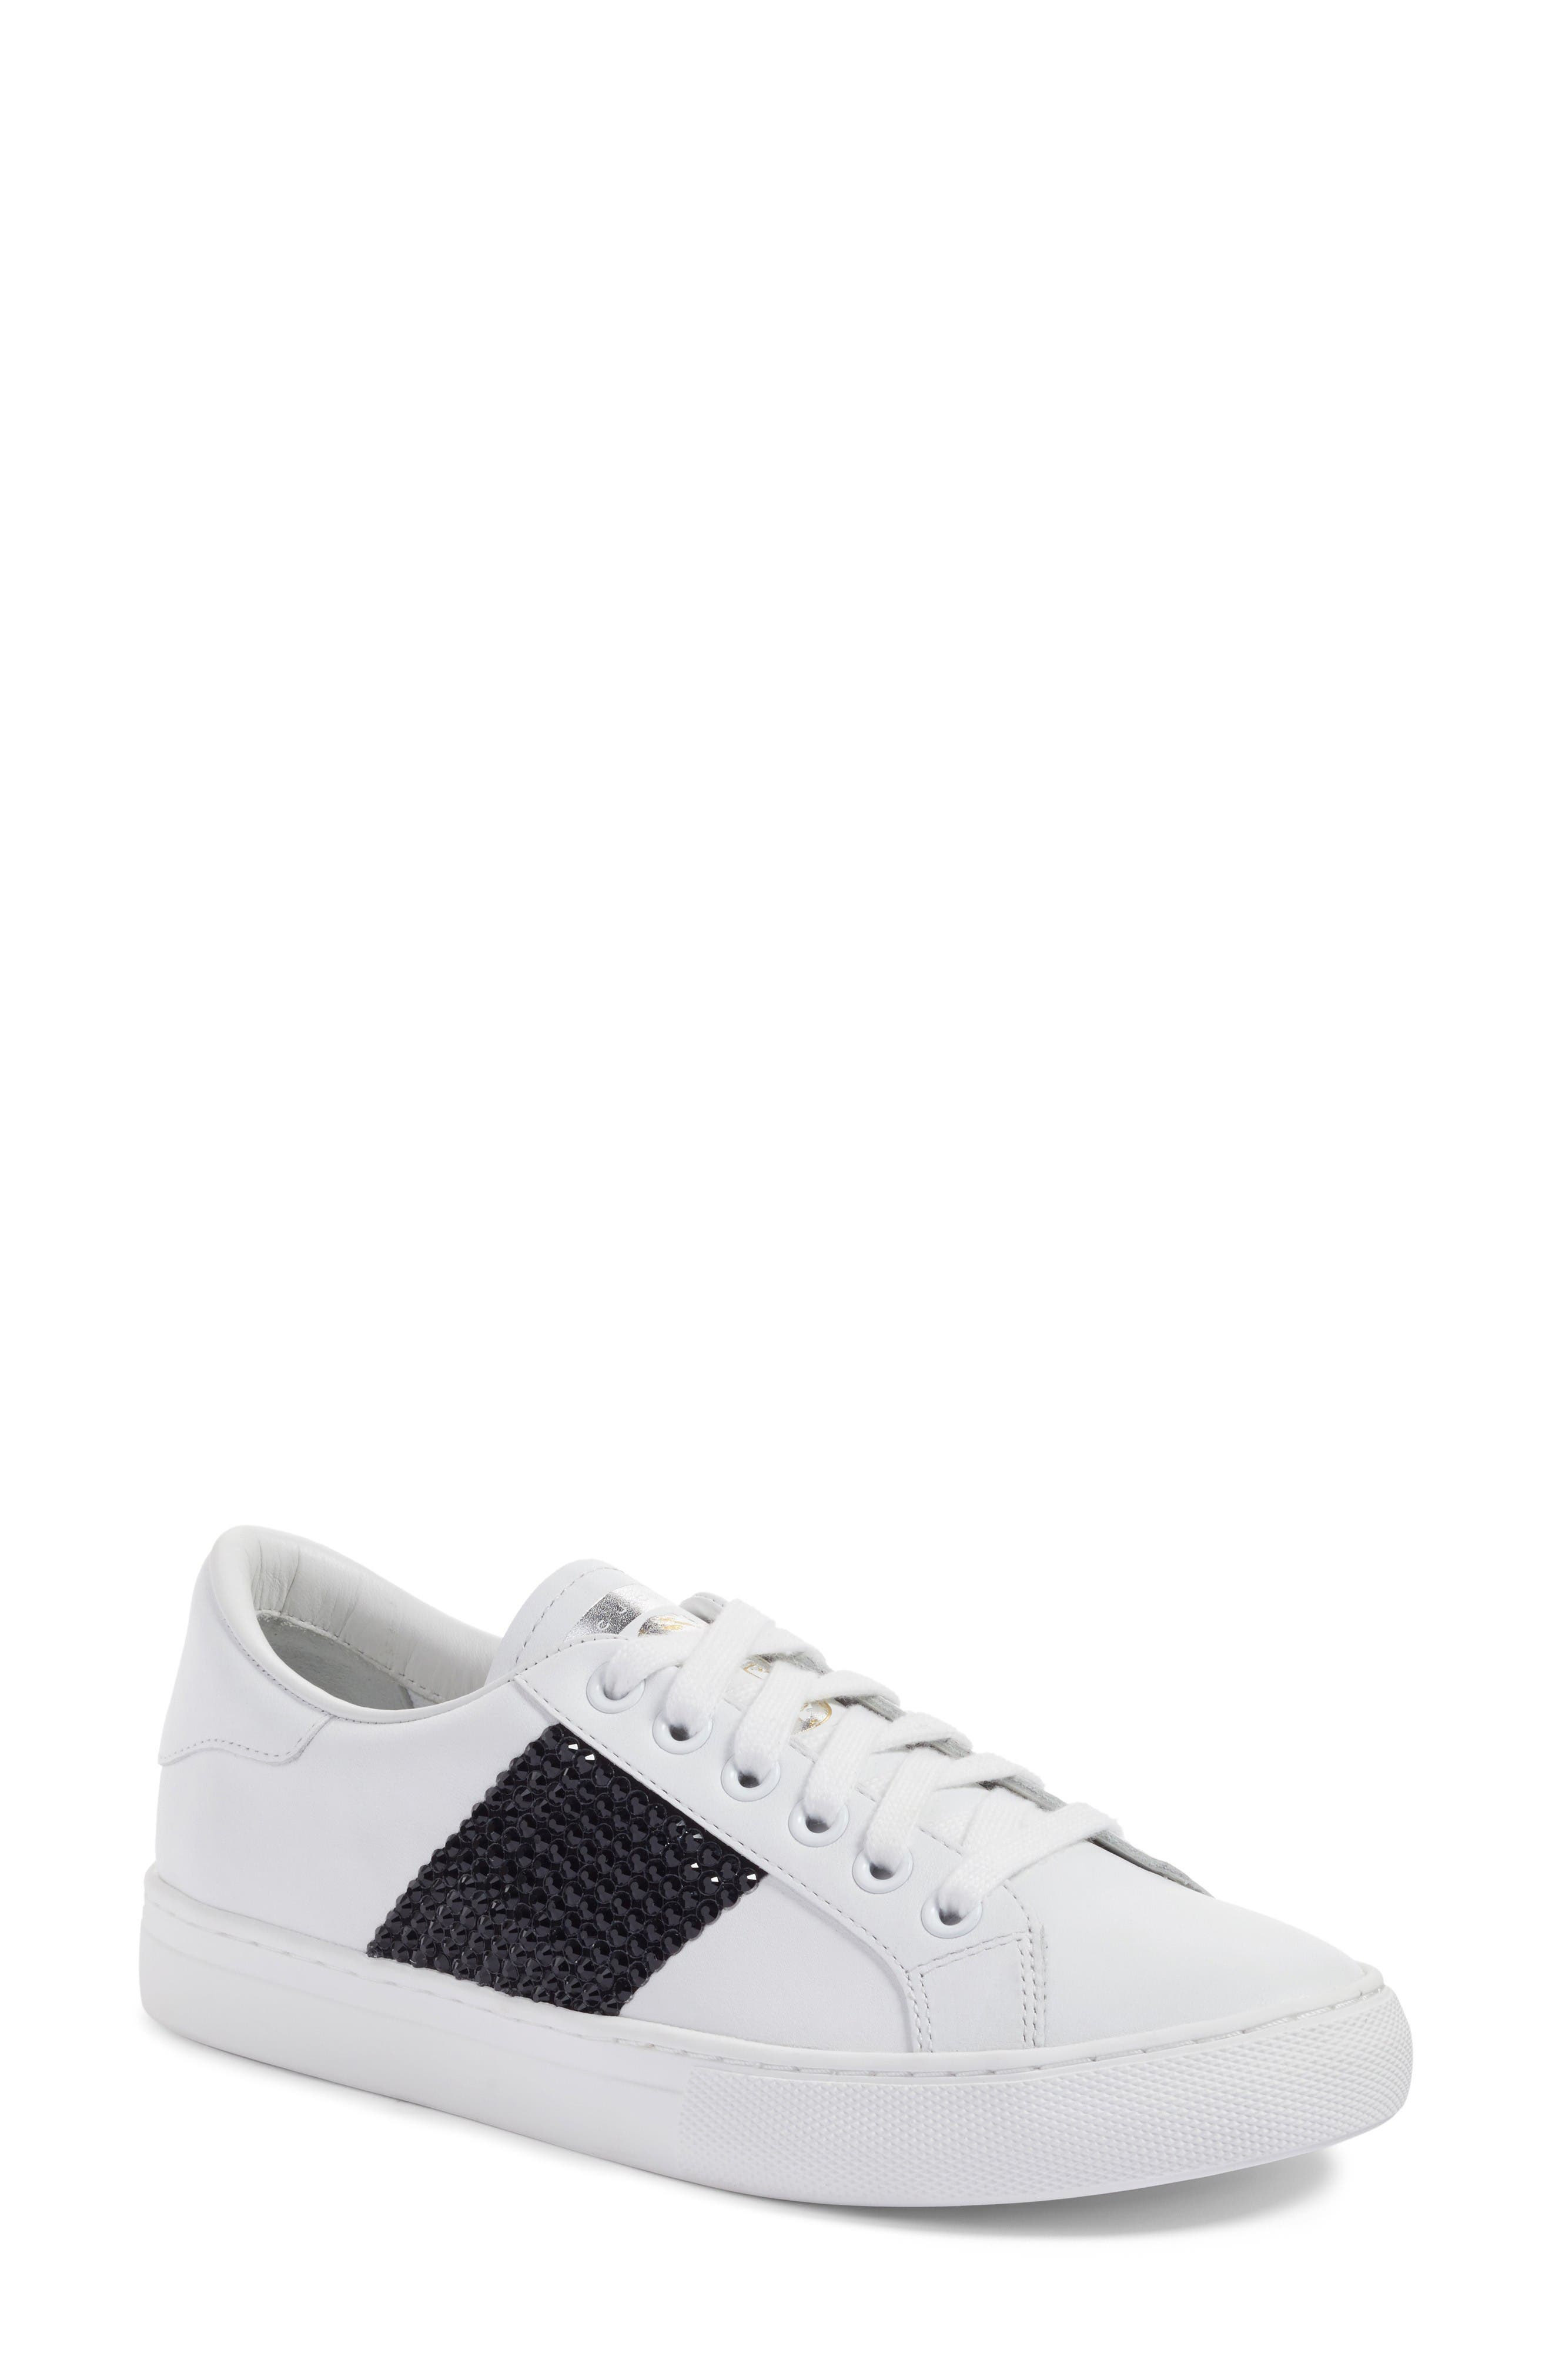 Main Image - MARC JACOBS Empire Embellished Sneaker (Women)